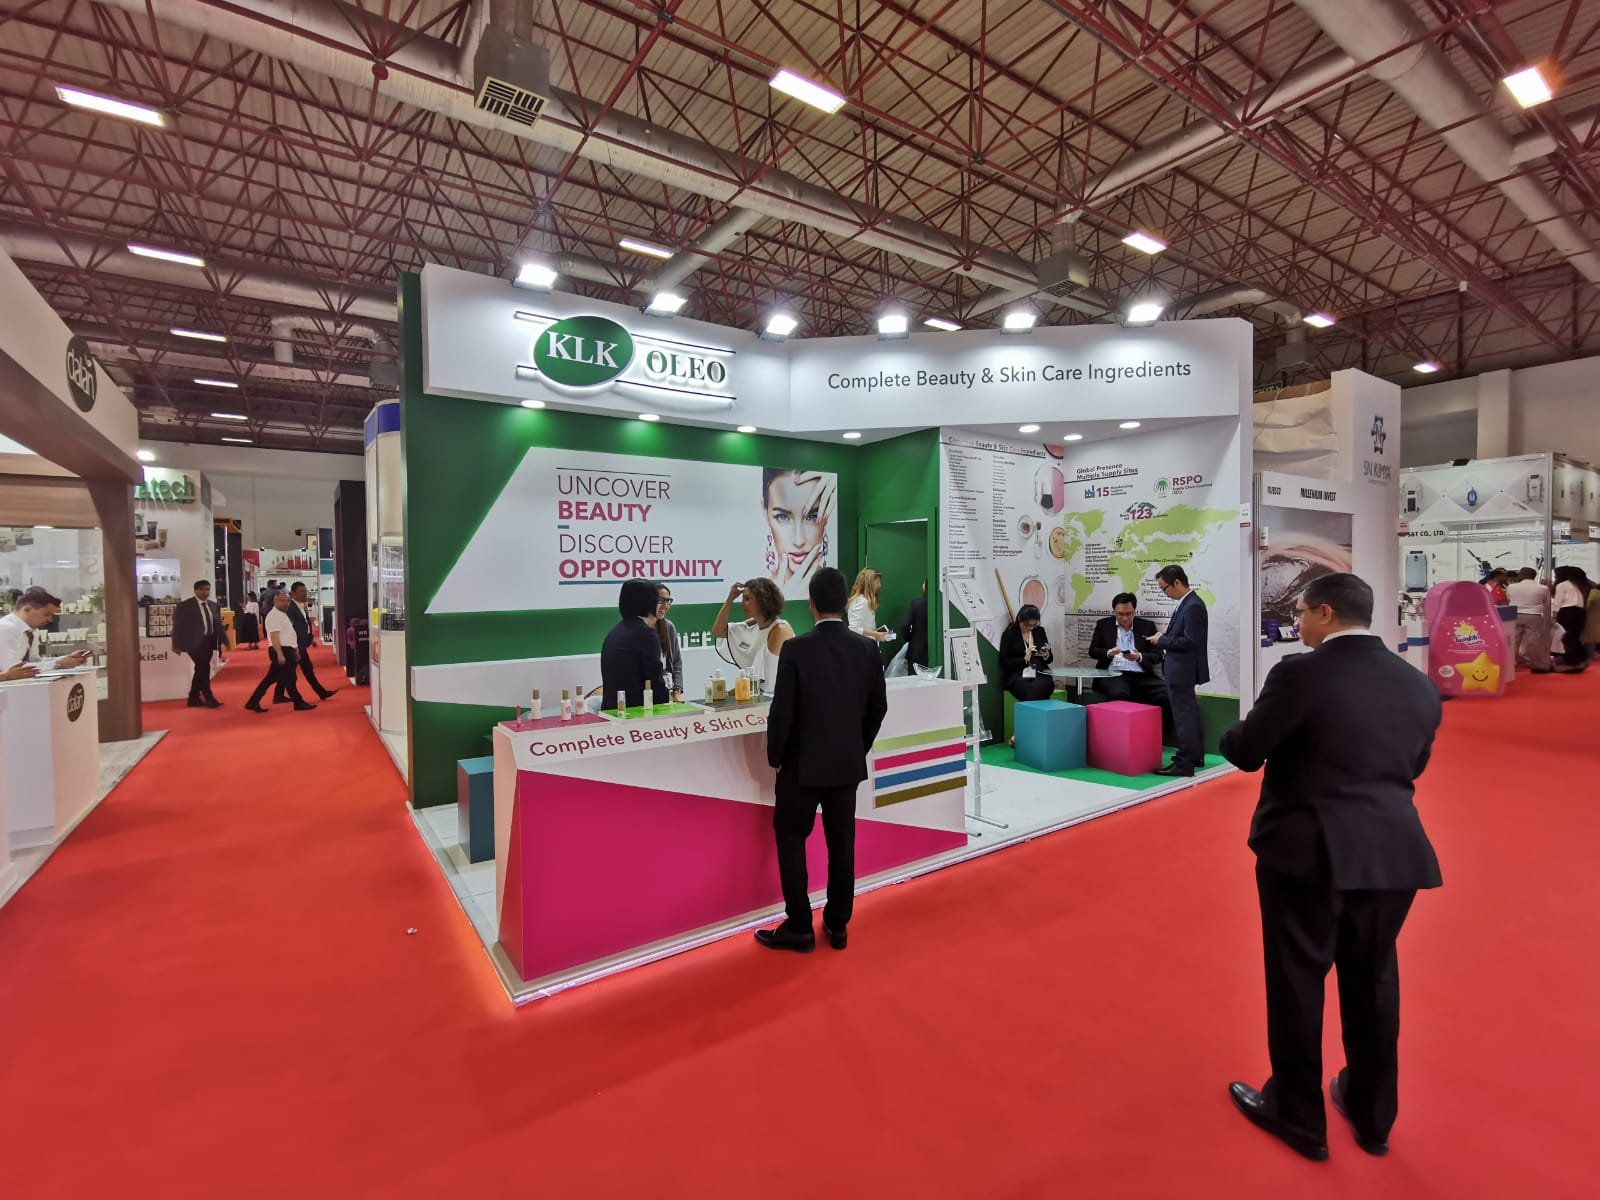 <a href='application-detail/171'>CLICK HERE - BEAUTYEURASIA 2019  ISTANBUL TURKEY KLK STAND   SHOW MORE<a/>